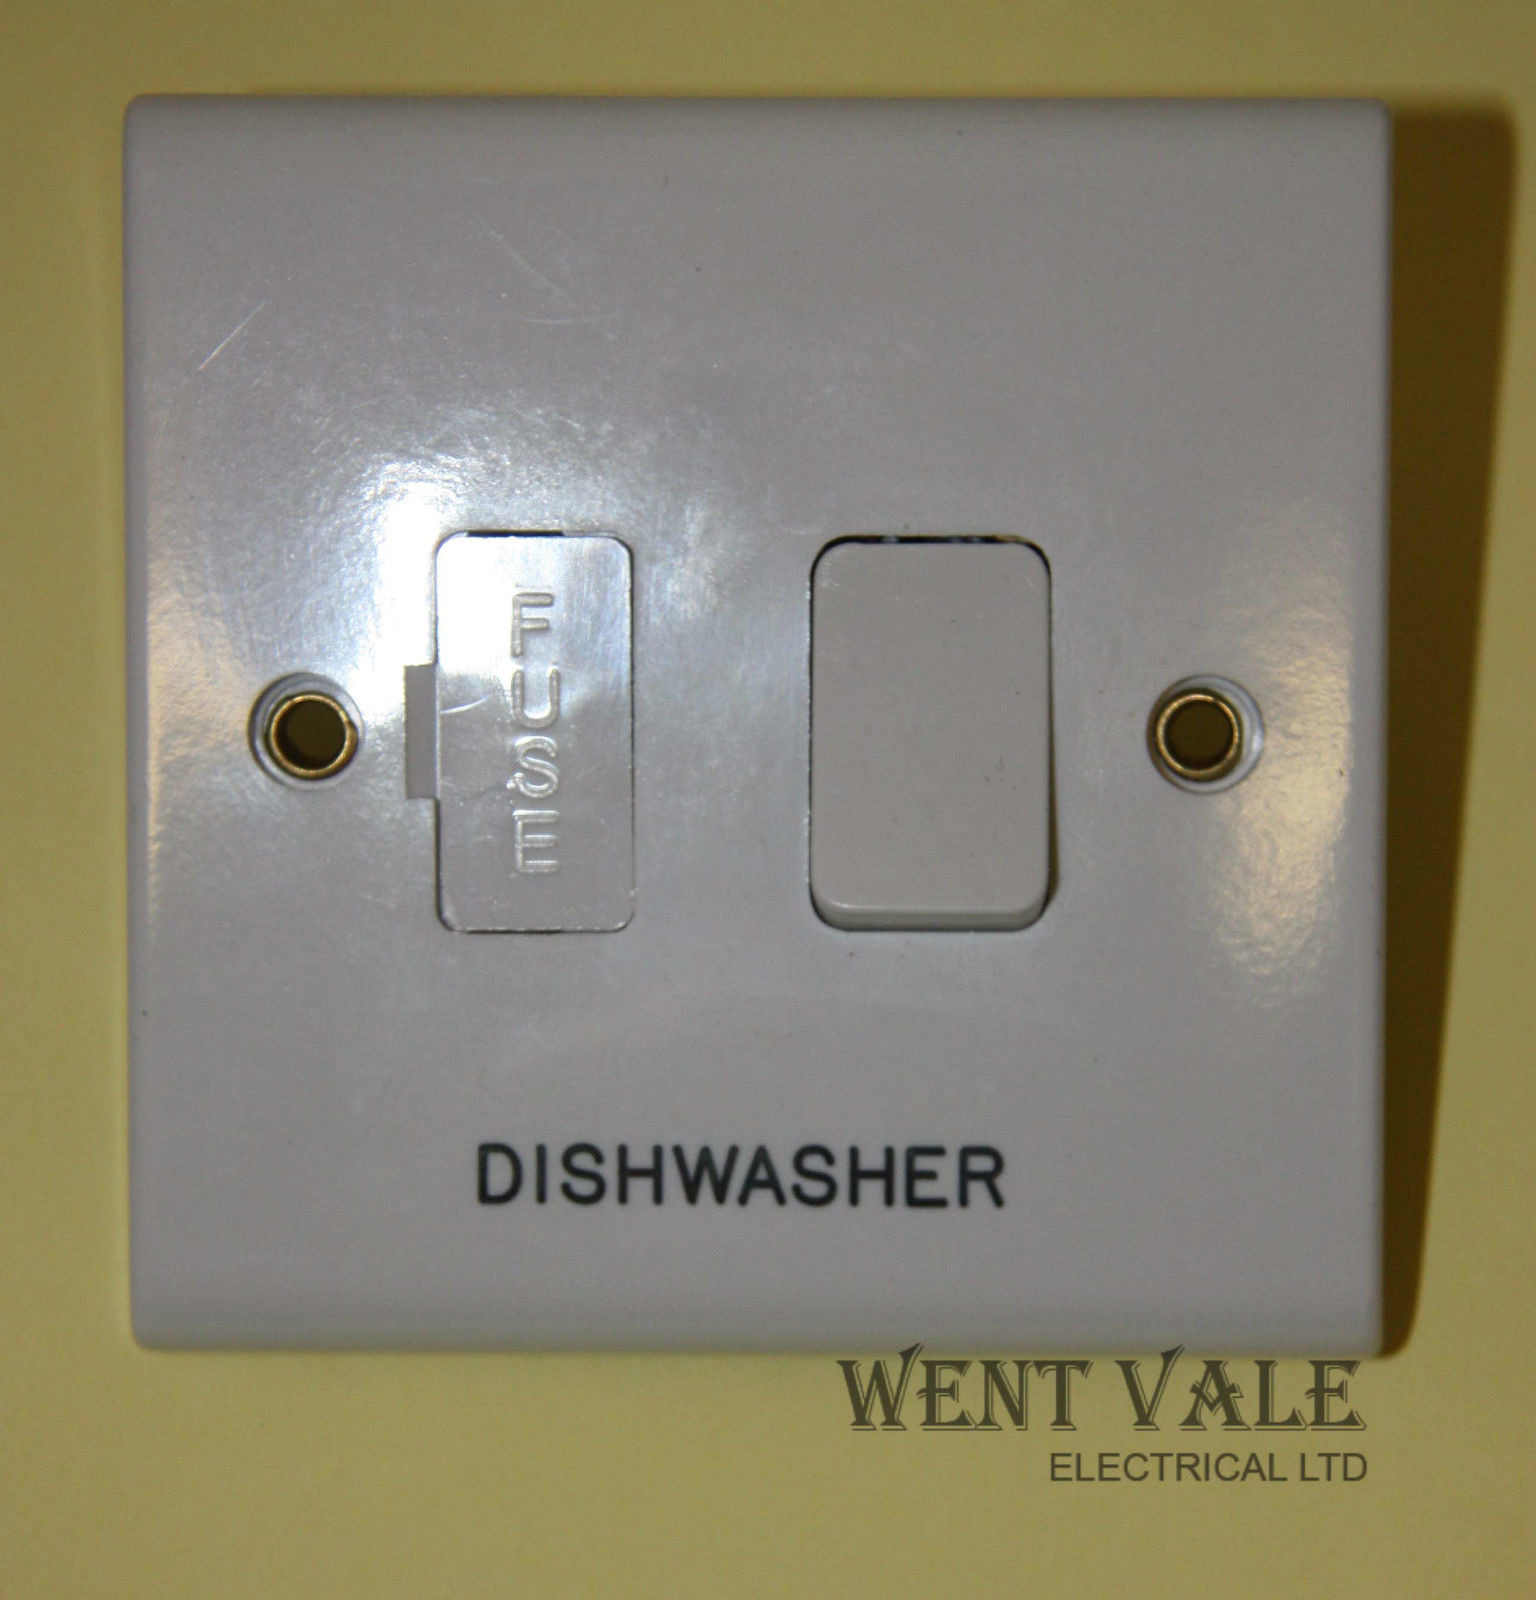 Deta Slimline - S1370 DW - 13a Engraved Switched Fused Spur Dish ...